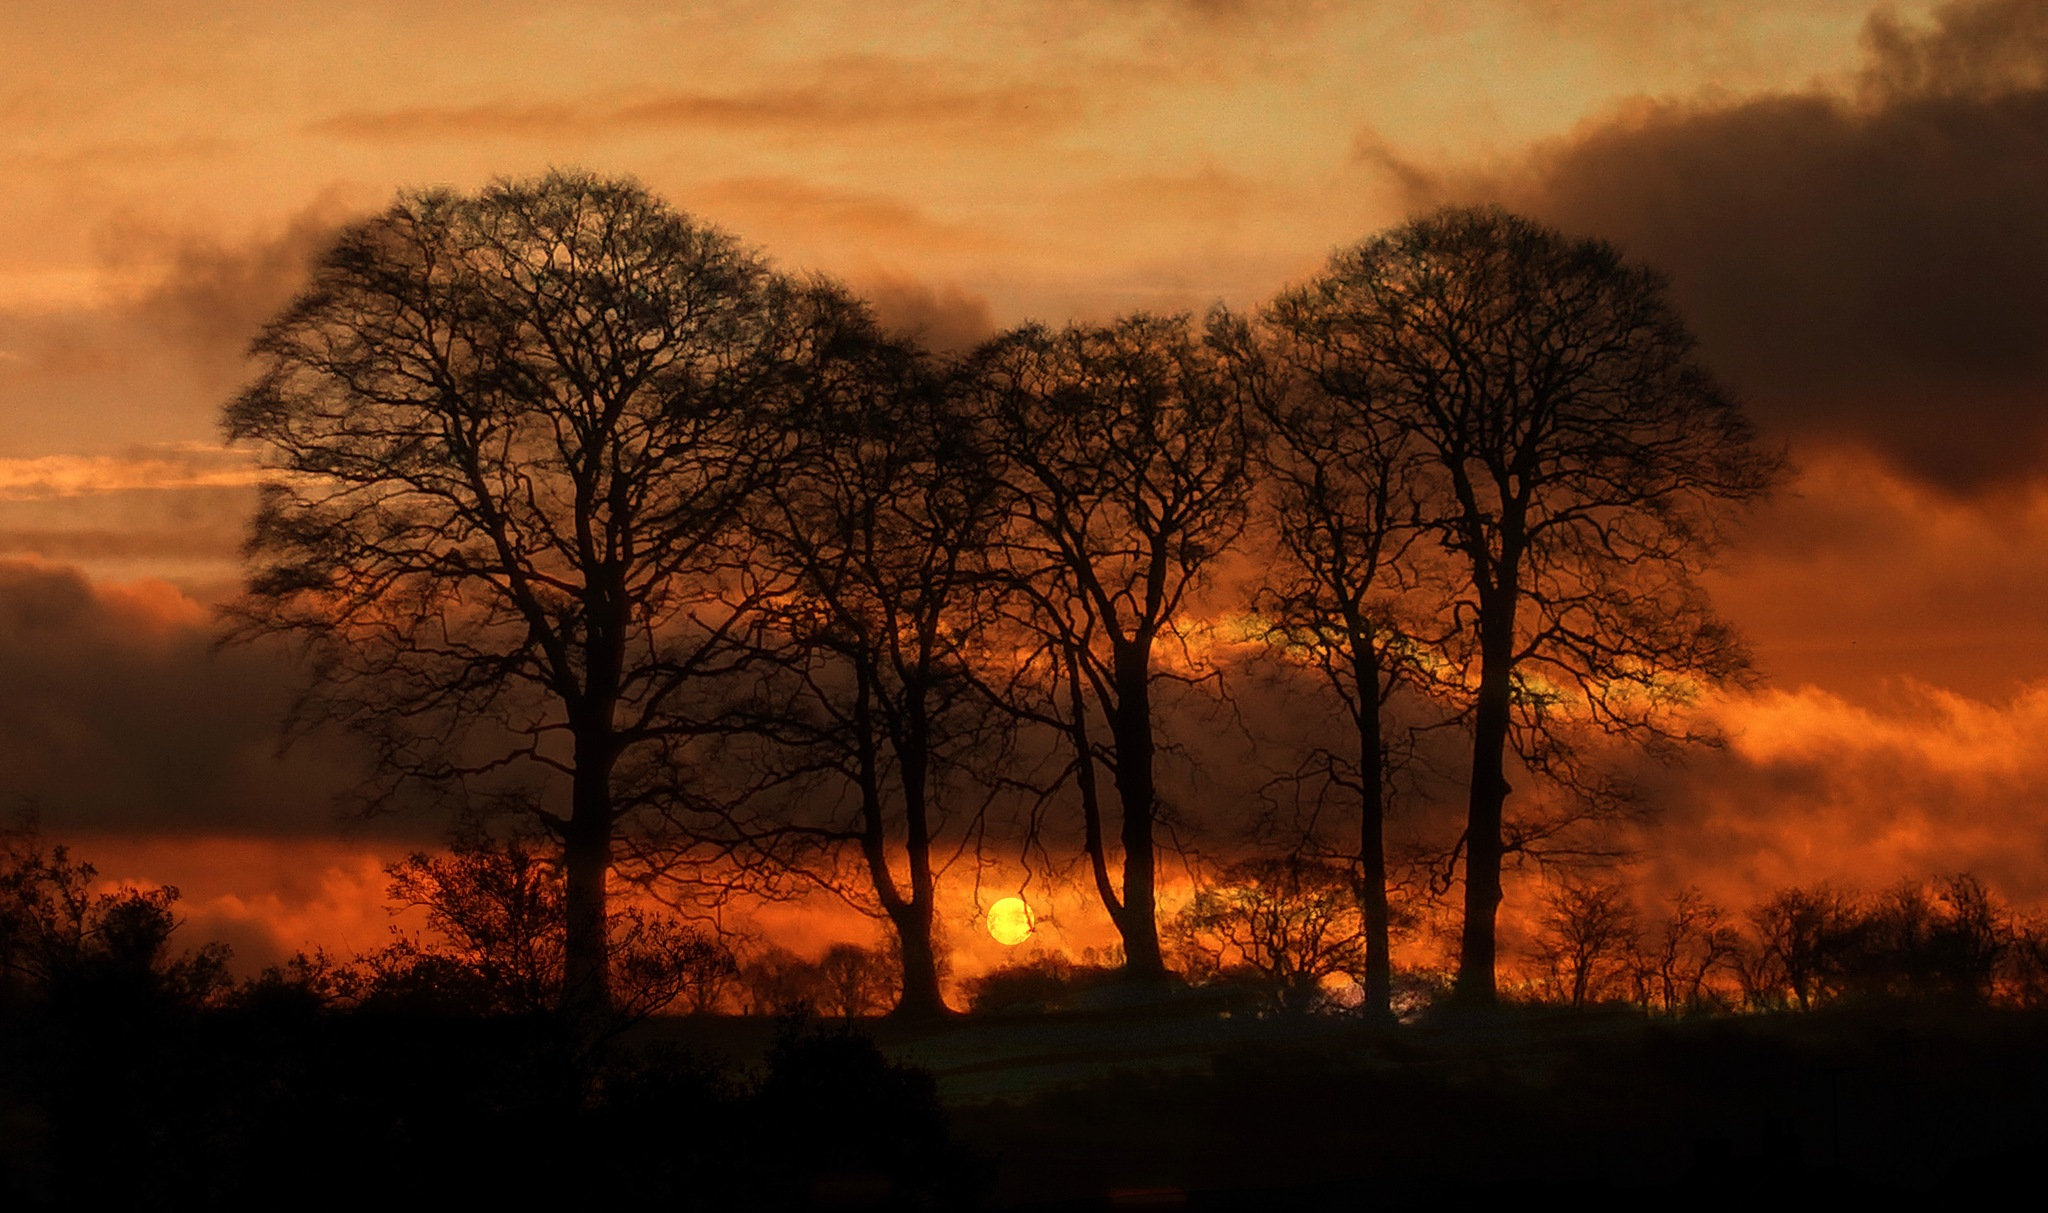 Nature on fire: Cheshire sunrise by NavidQureshi